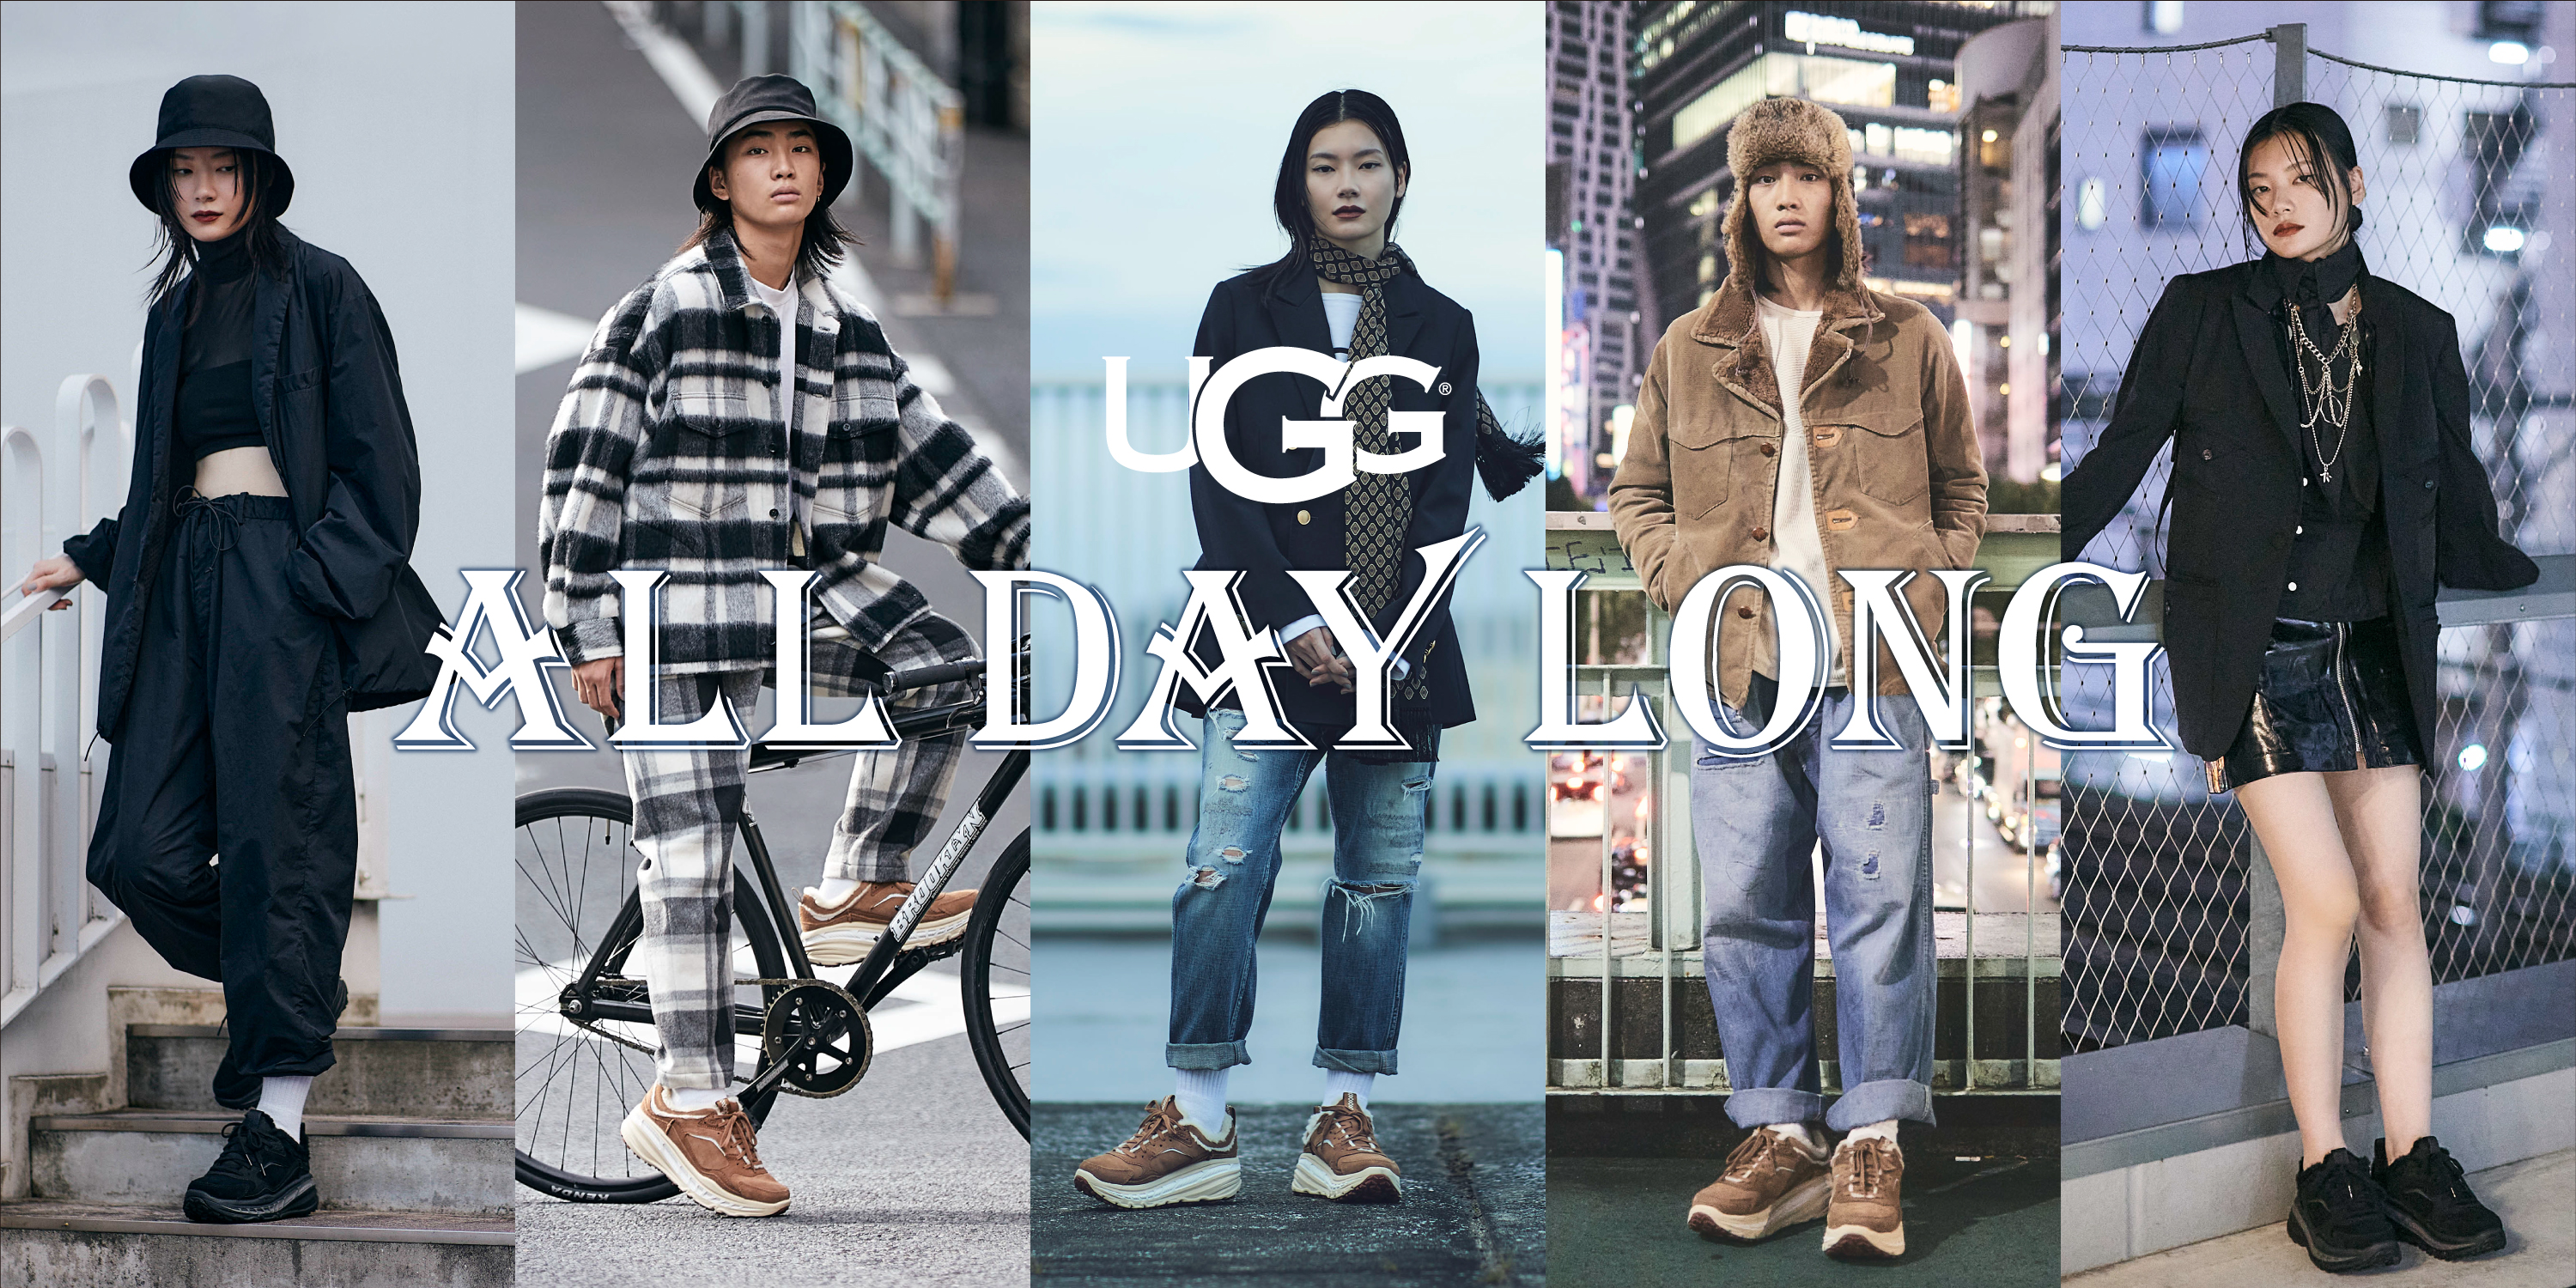 UGG ALL DAY LONG